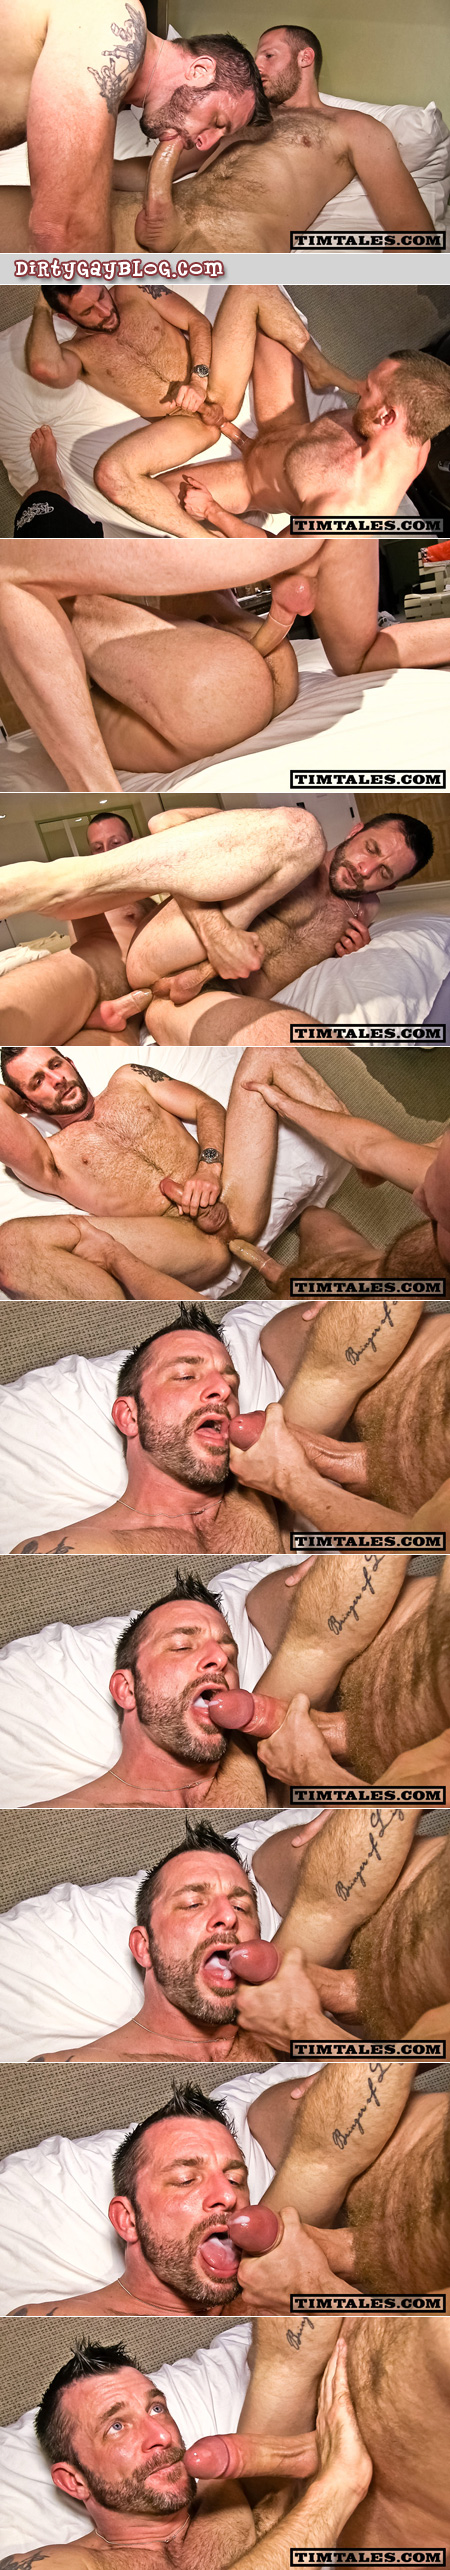 Hung top fucks a tight, mature bottom then shoots a huge cumshot from his enormous cock into the guy's furry beard and mouth.